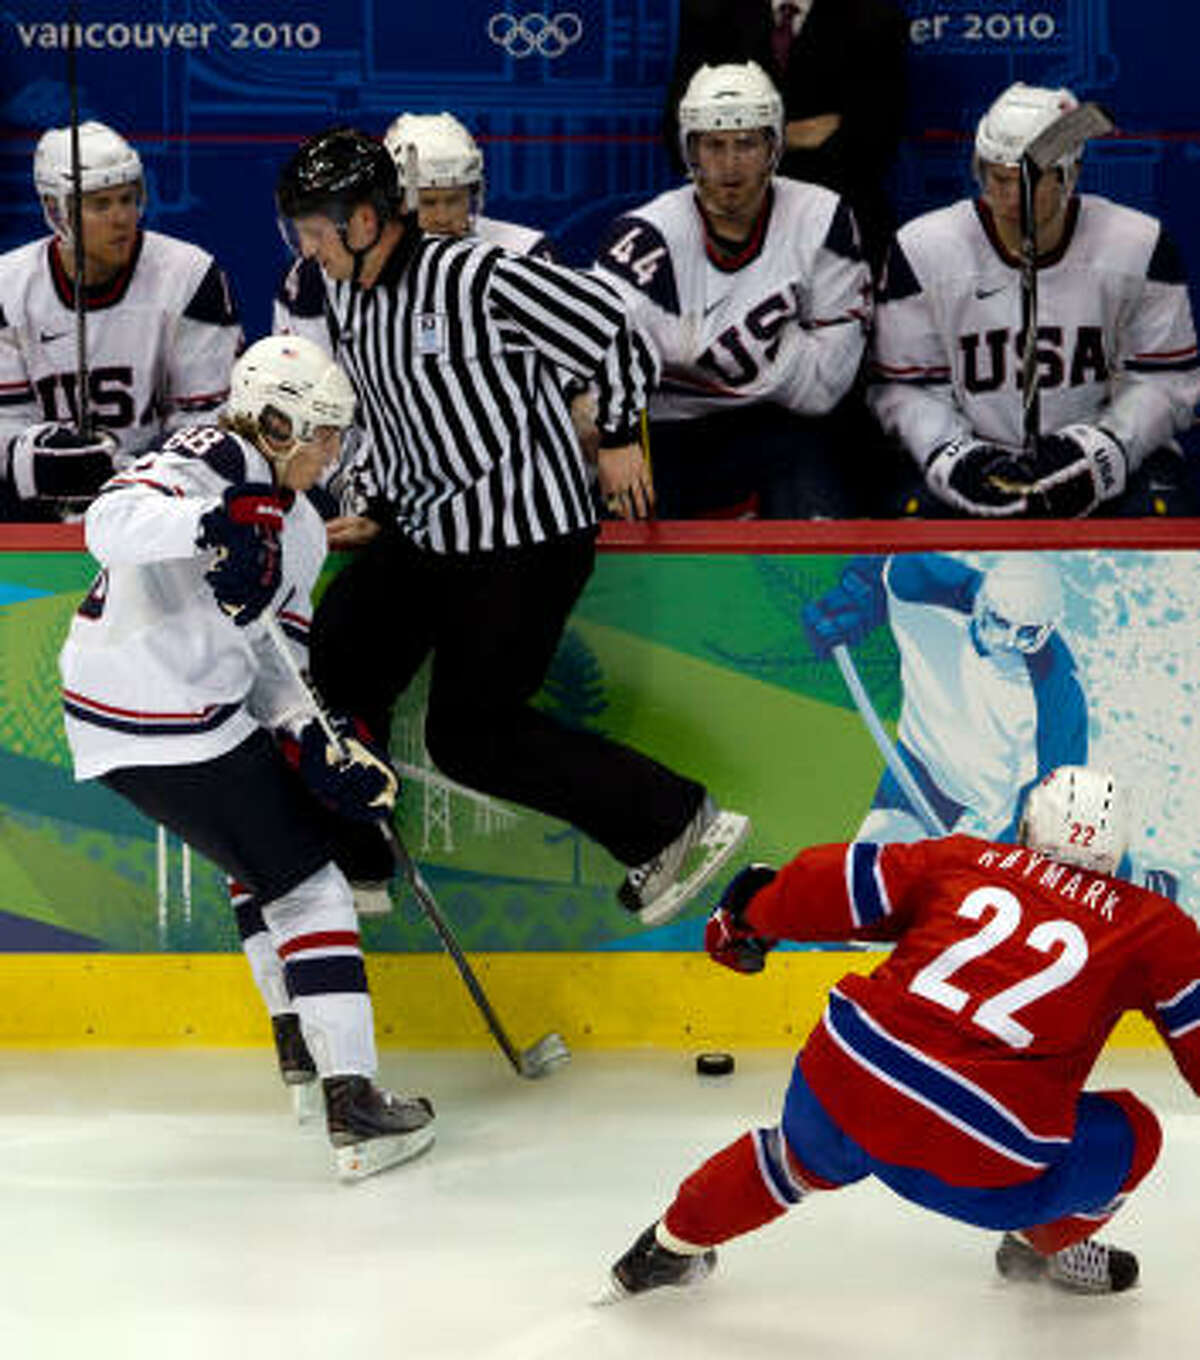 A linesman hops over the puck as USA's Patrick Kane and Norway's Martin Roymark give chase during a preliminary round hockey game. Team USA won 6-1.